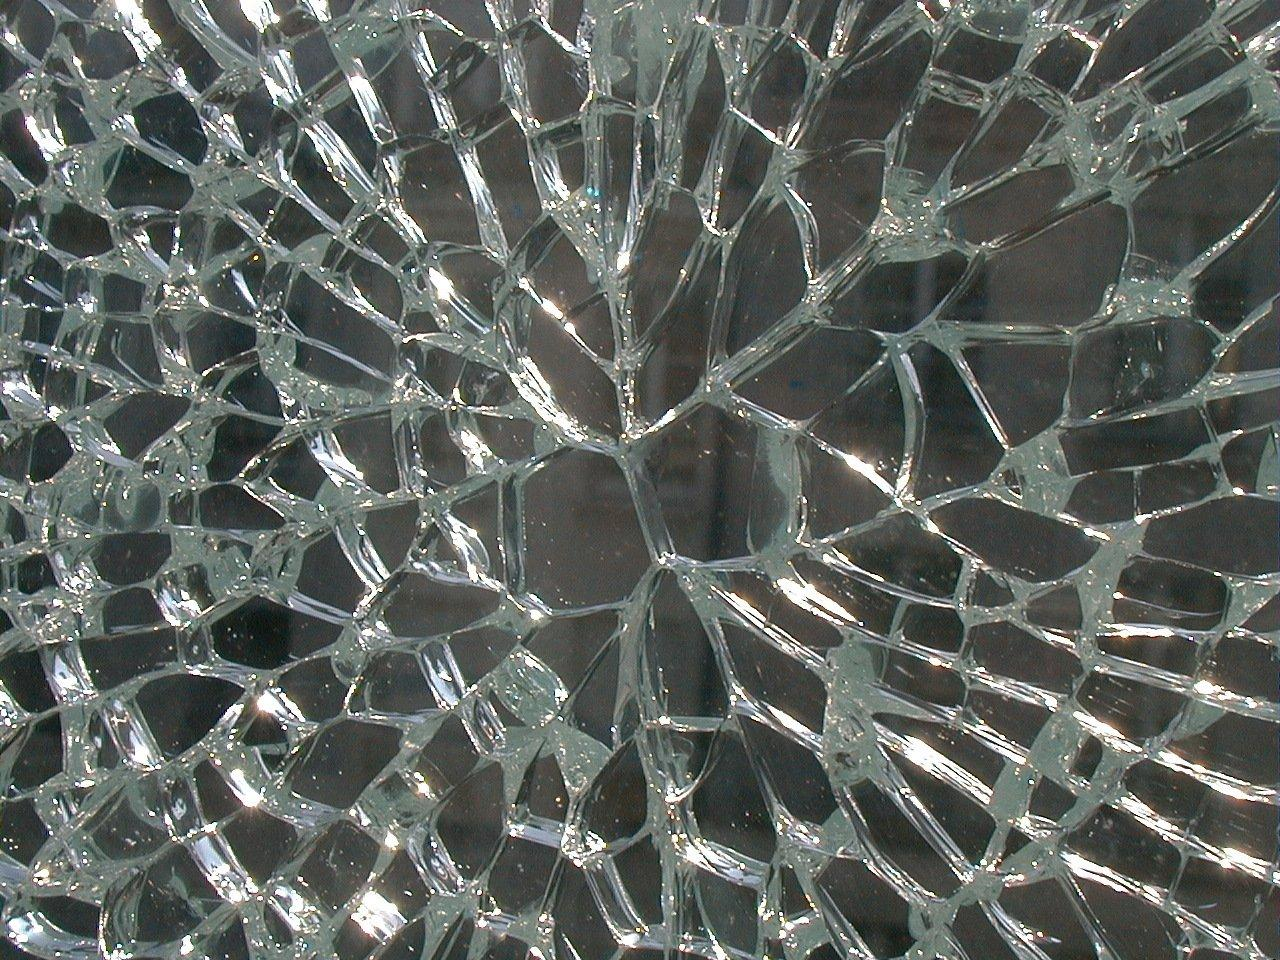 Spontaneous breakage of tempered glass caused by nickel sulphide inclusion.